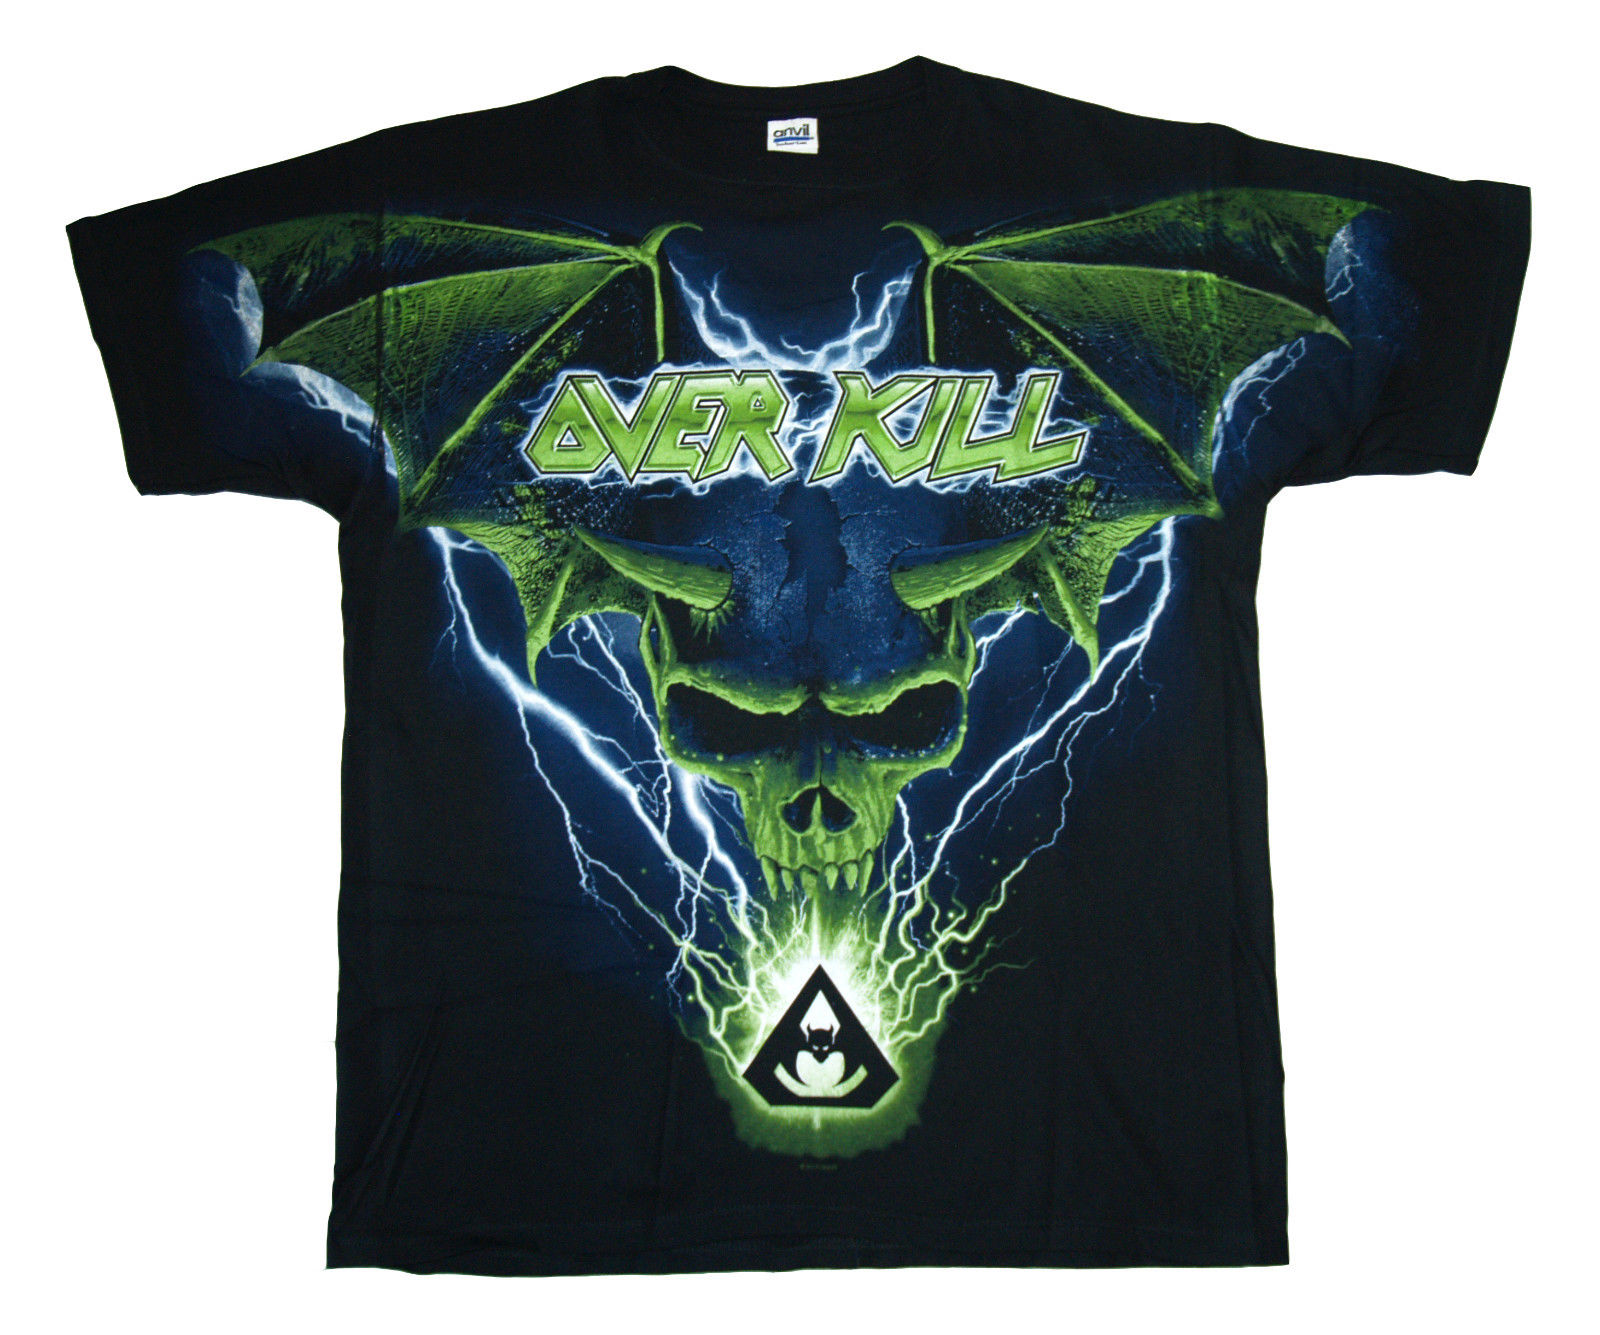 OVERKILL - Big Print Bat Wigs Skull - T SHIRT S-M-L-XL-3XL New Official T Shirt Printed Pure Cotton MenS